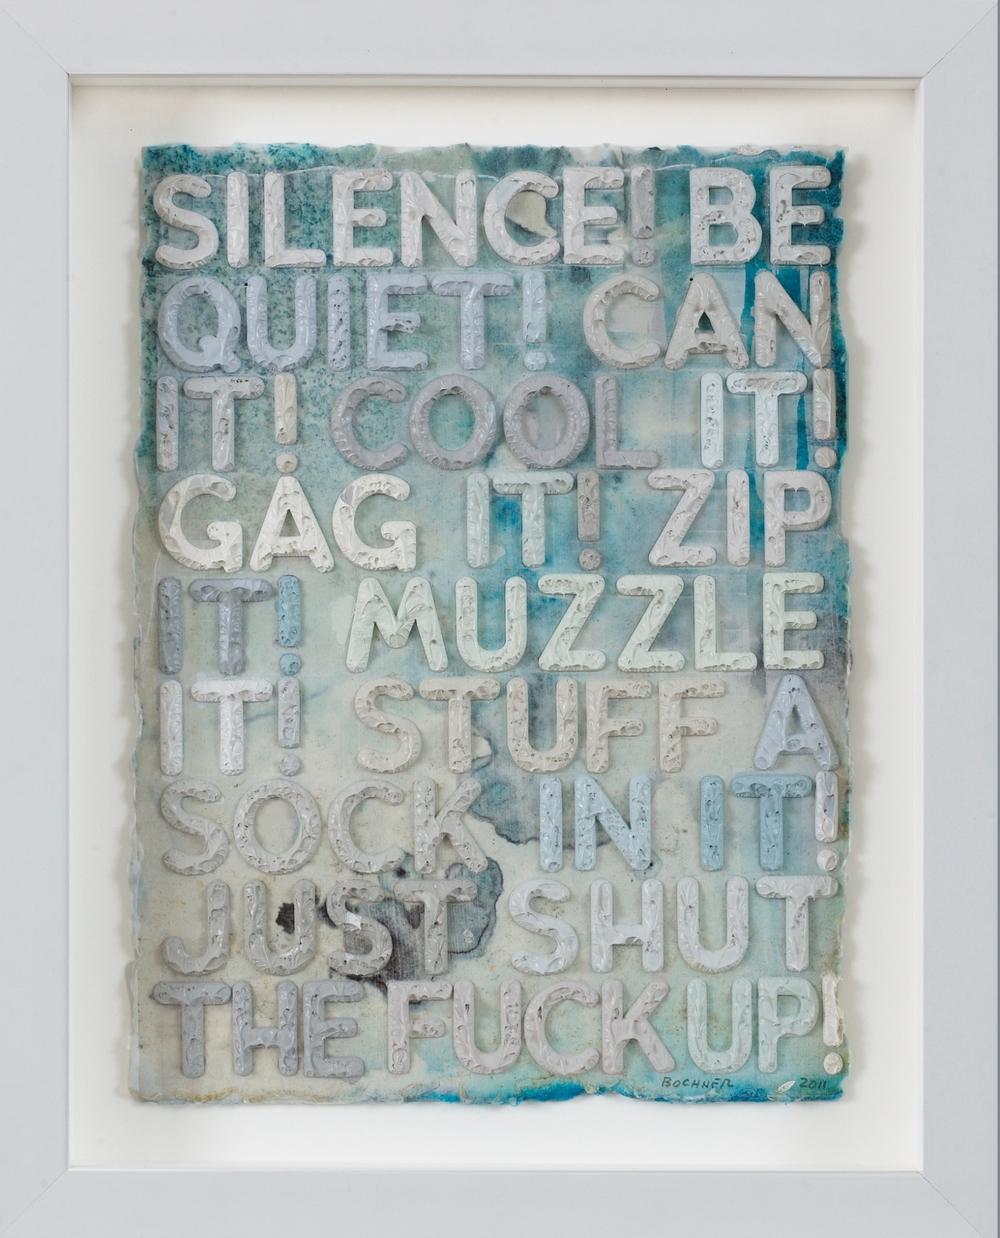 SOLD Silence, 2011, monoprint with collage, engraving and embossment on hand-dyed, handmade Twinrocker paper, 12 x 9 inches